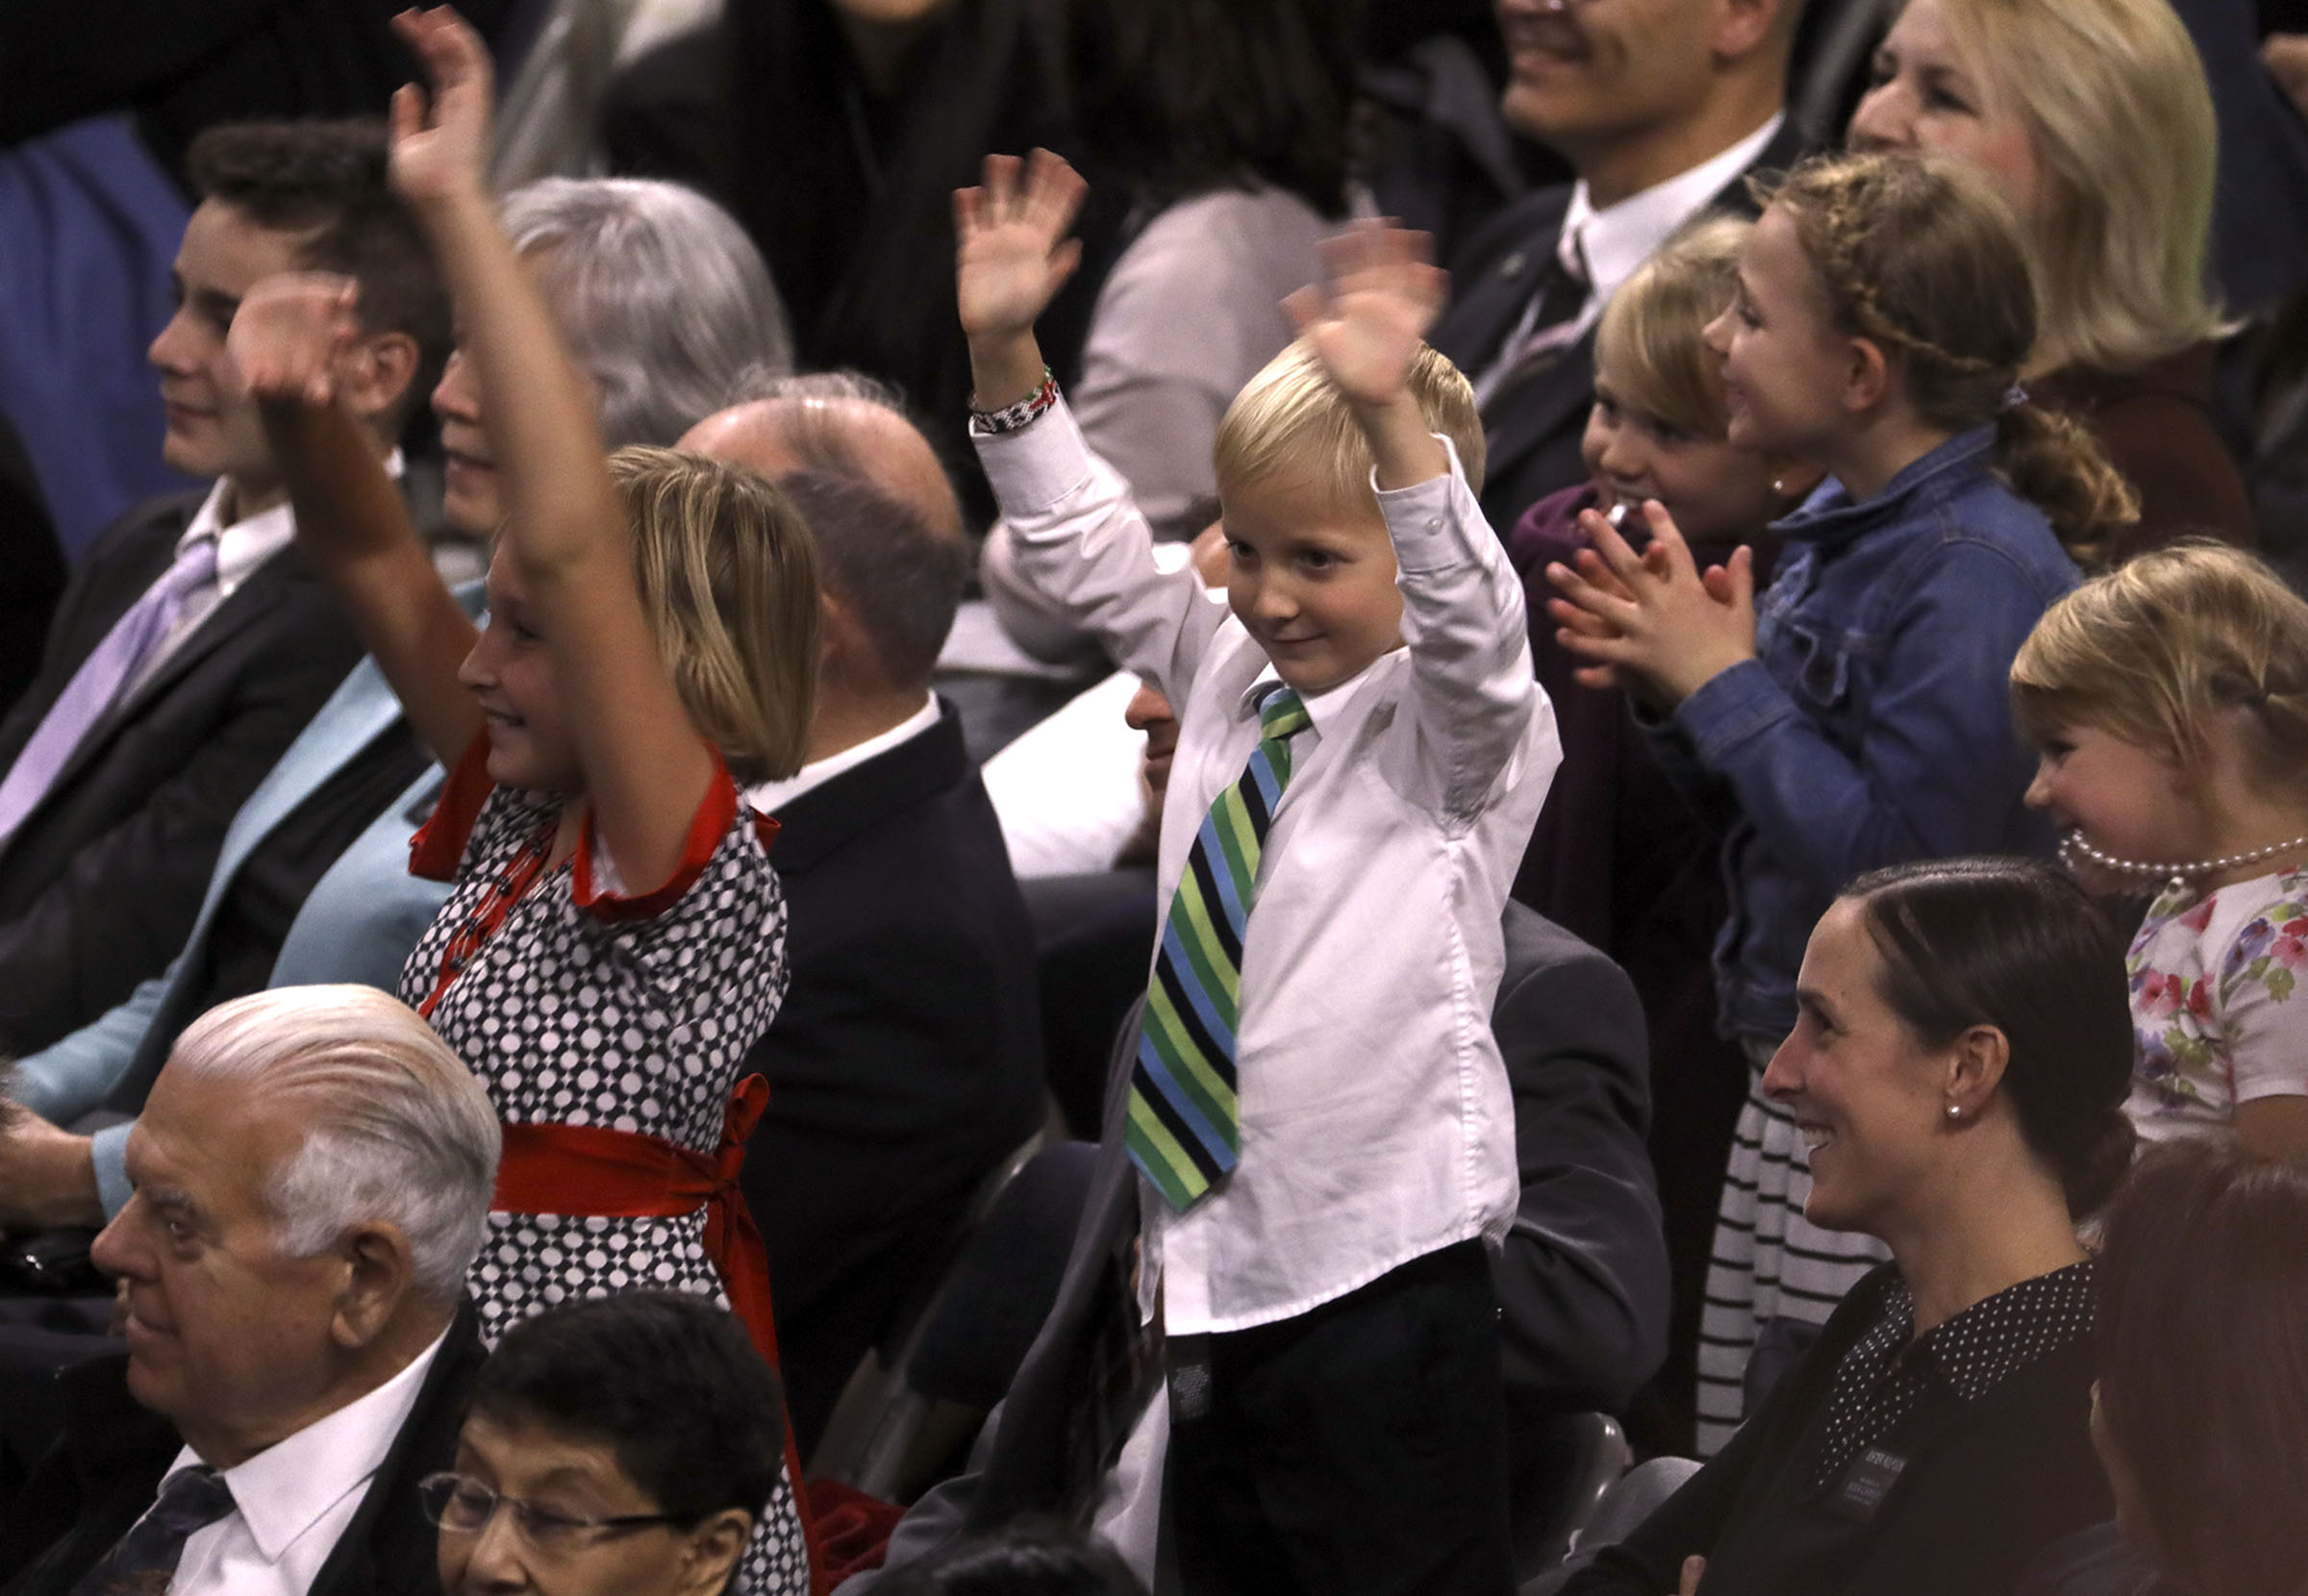 Primary children raise their hands at the request of President Russell M. Nelson during a devotional at the Langley Events Center in Langley, British Columbia, on Sunday, Sept. 16, 2018.